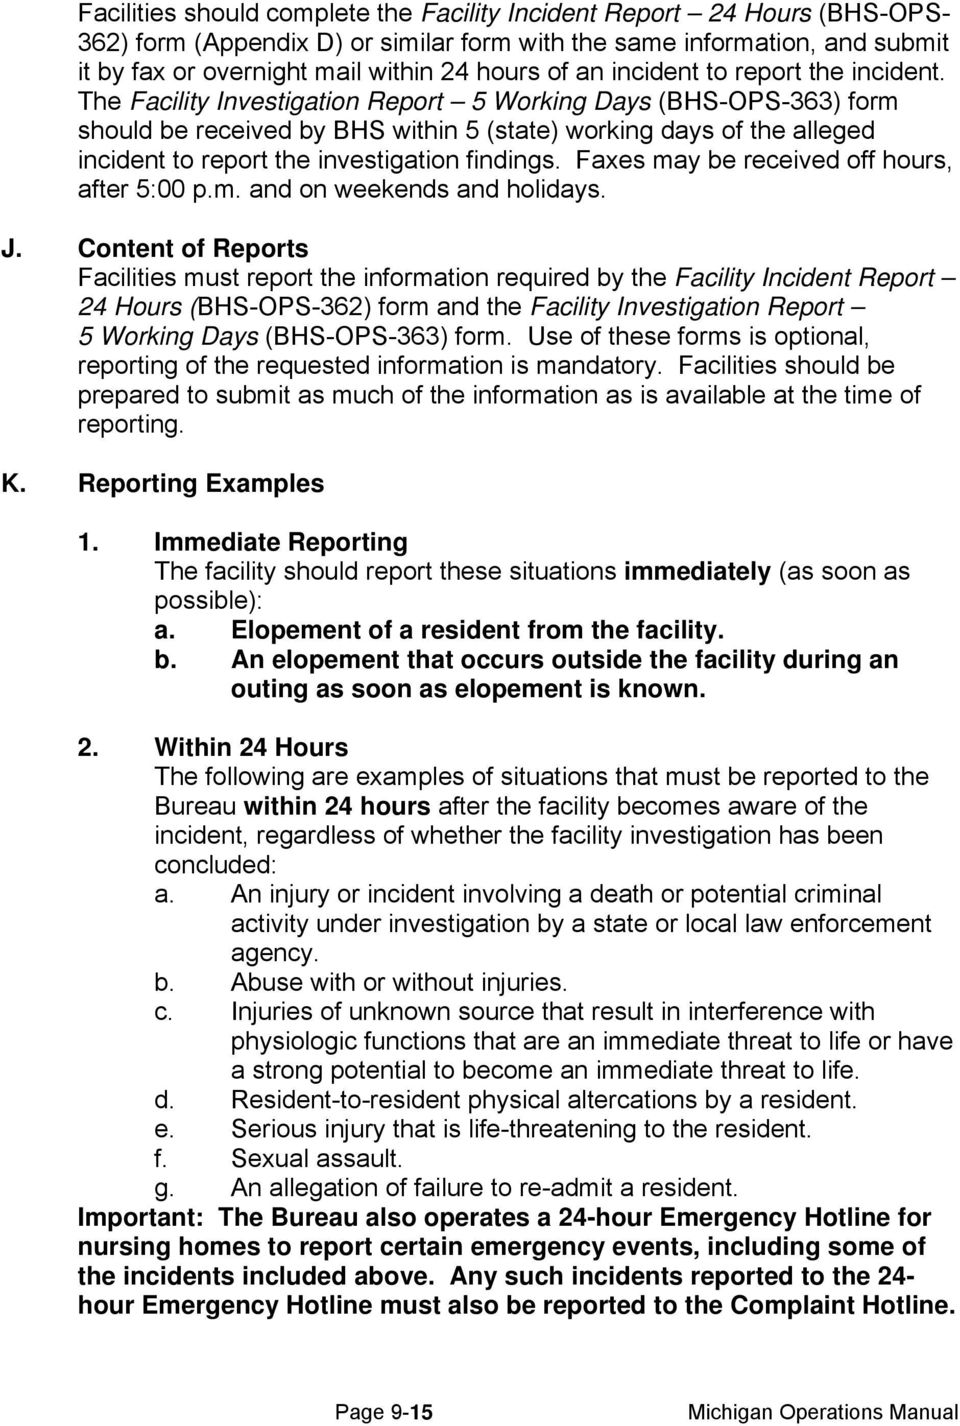 The Facility Investigation Report 5 Working Days (BHS-OPS-363) form should be received by BHS within 5 (state) working days of the alleged incident to report the investigation findings.